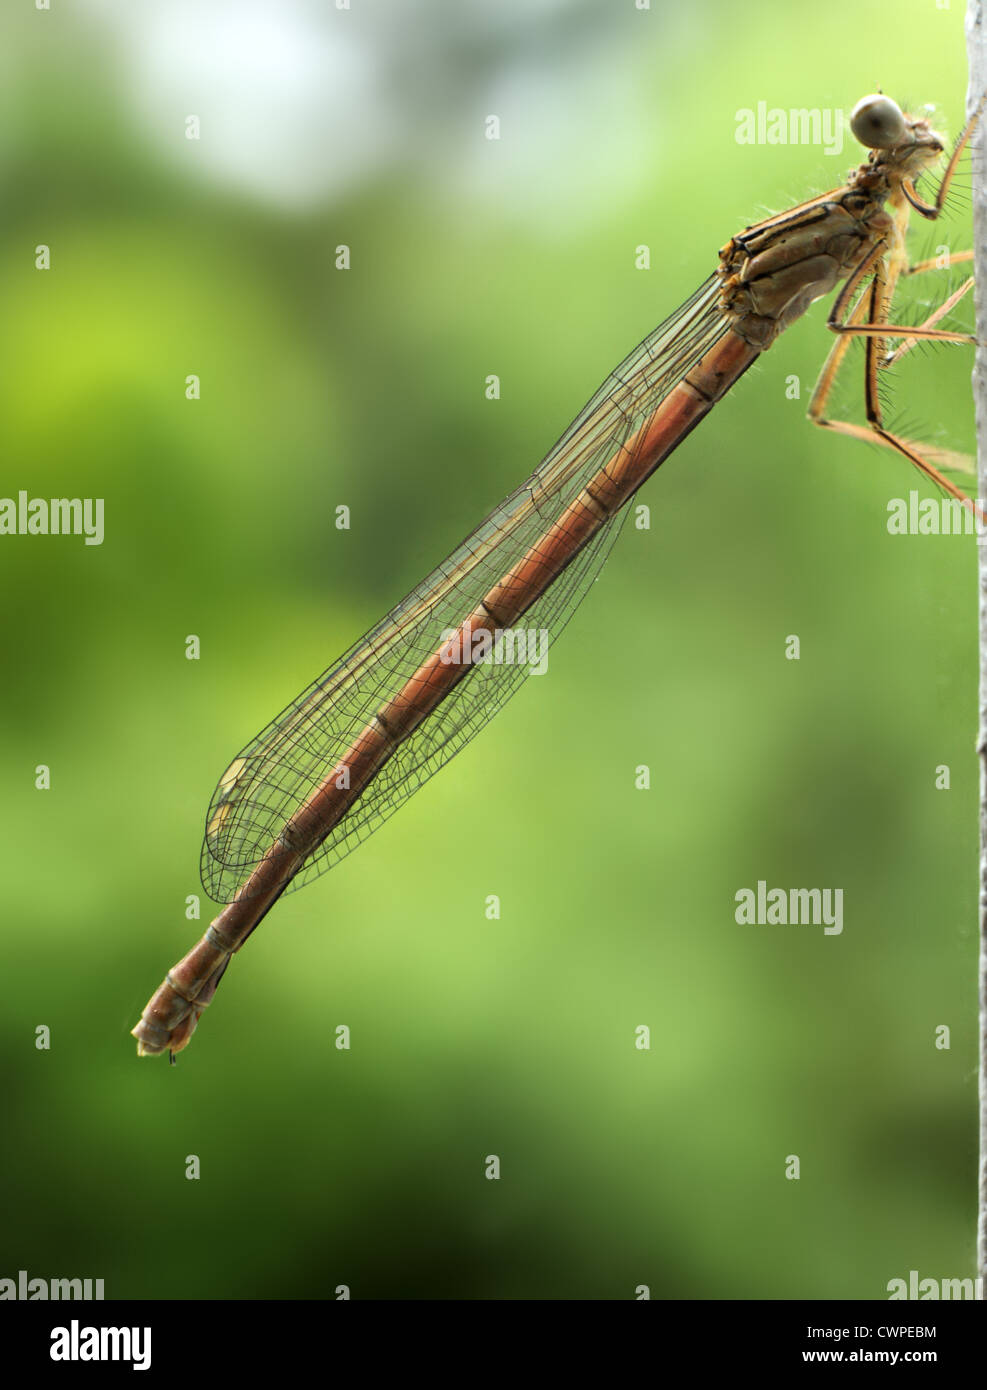 A mayfly with wings folded clings onto a door frame. - Stock Image